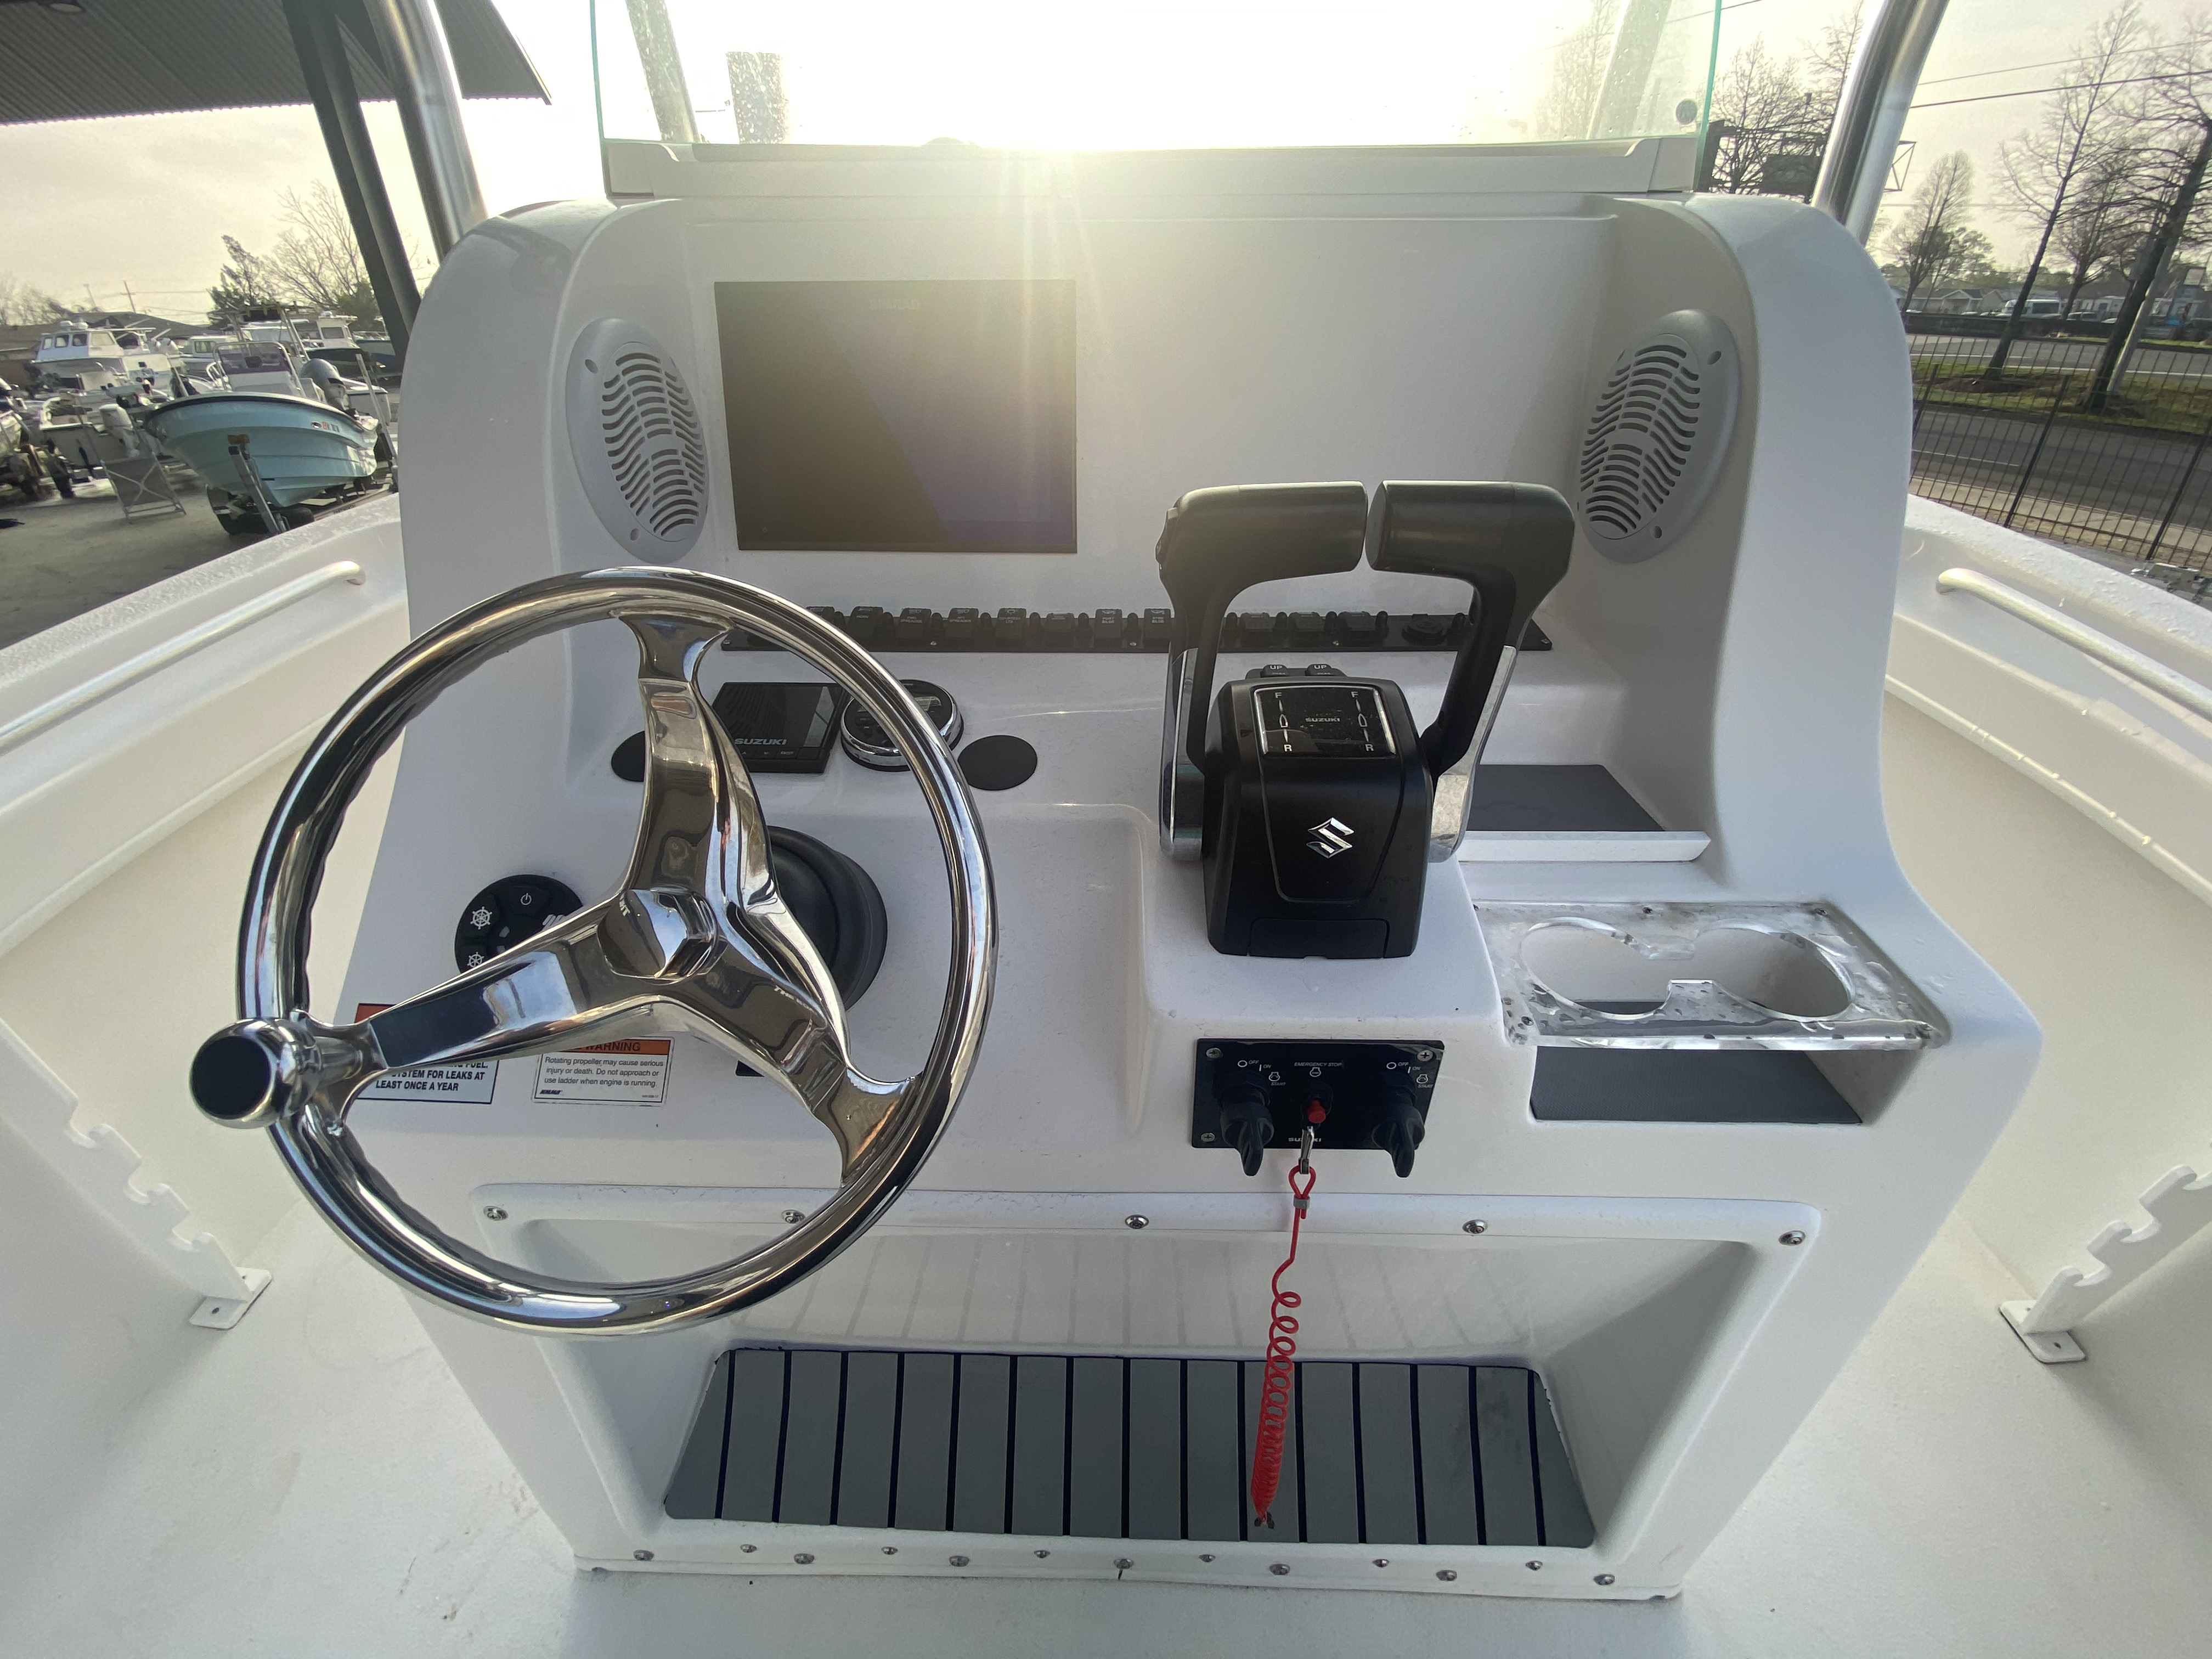 2020 Twin Vee boat for sale, model of the boat is 26 Pro & Image # 5 of 24